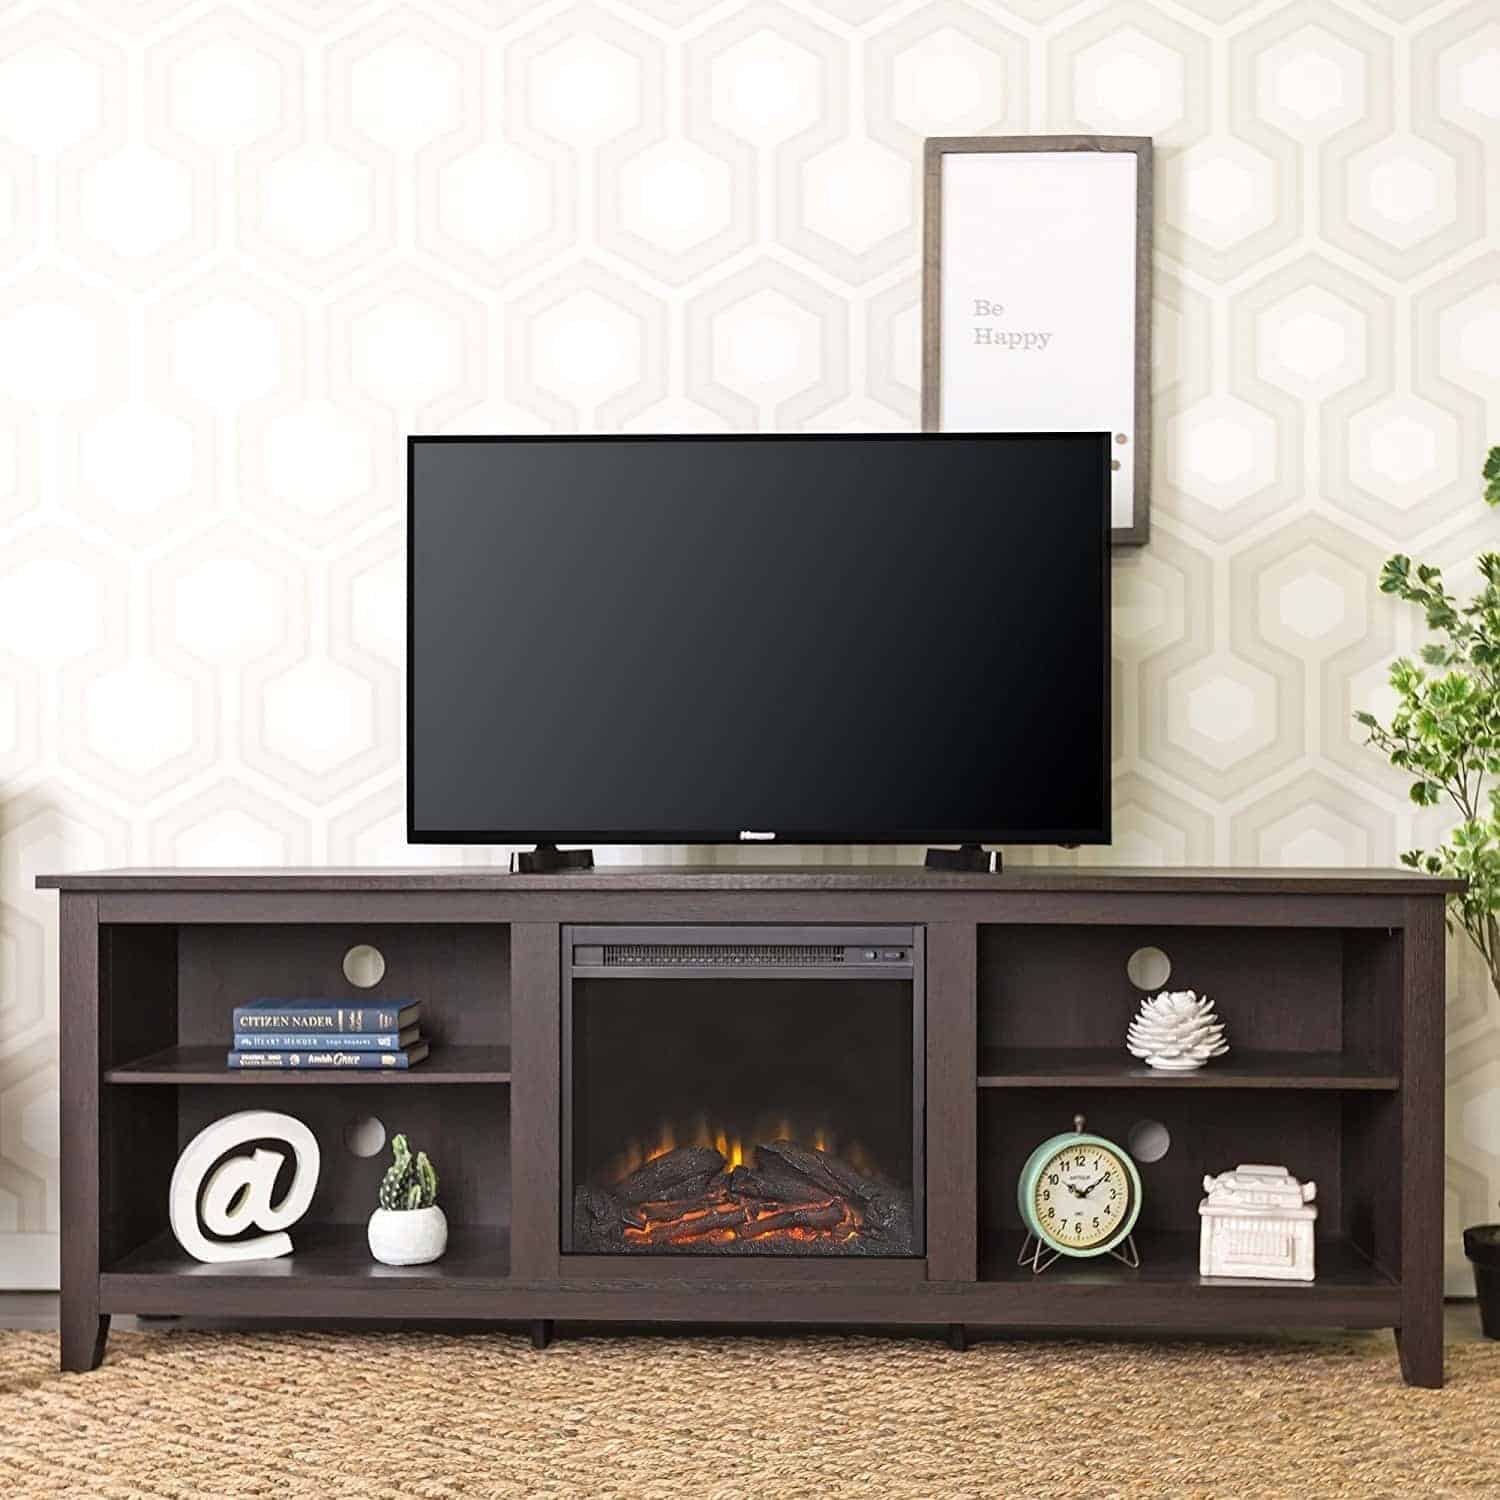 "WE Furniture 70"" Wood Fireplace TV Stand Console"